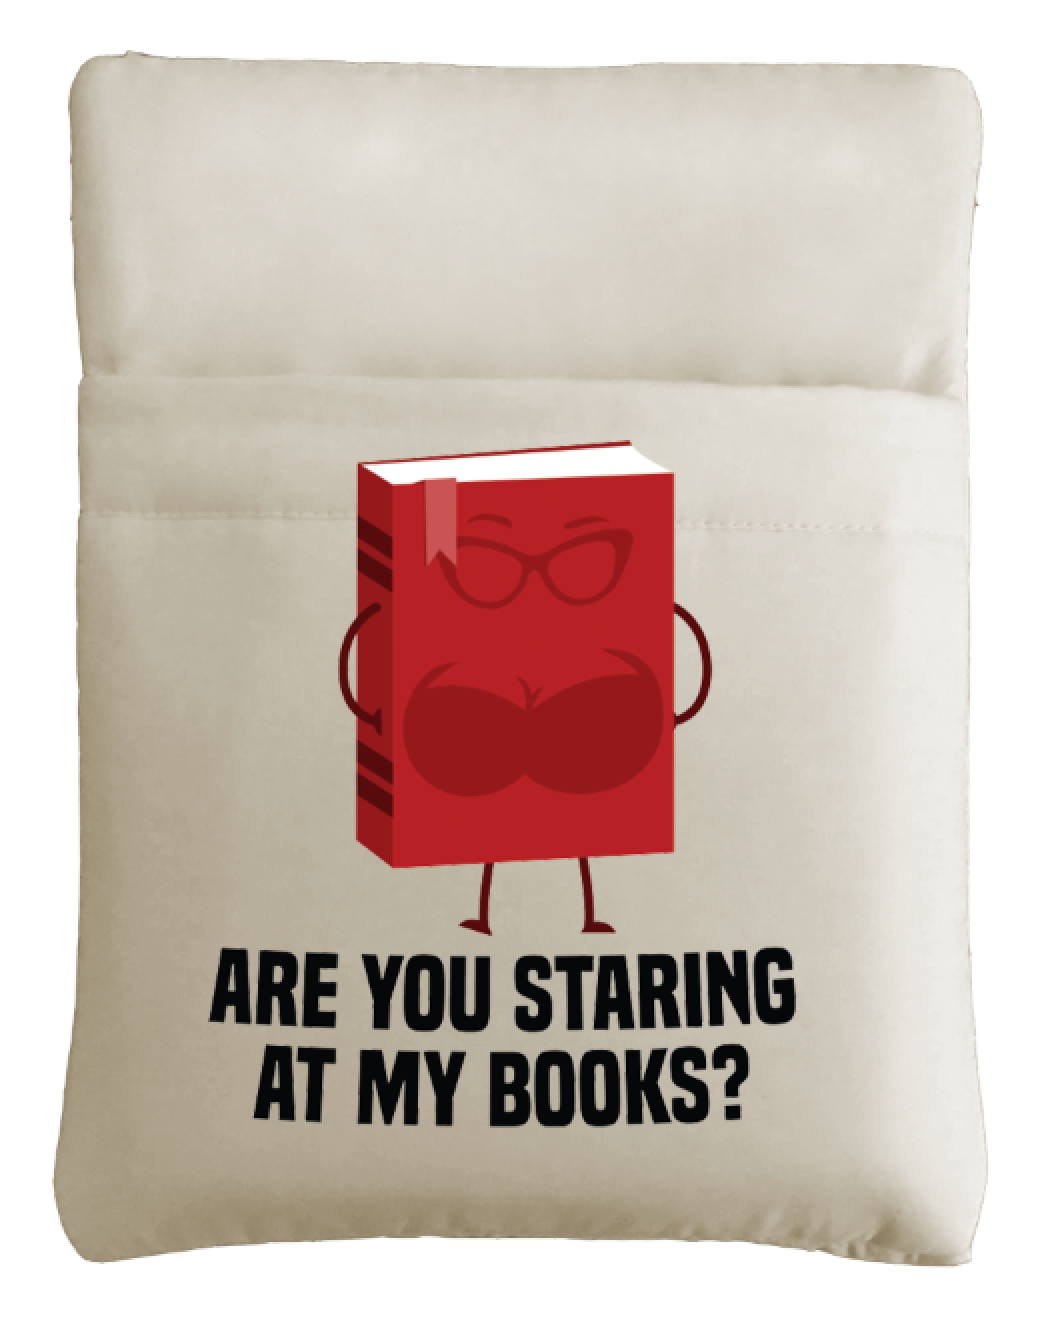 1 Are You Staring At My Books? and 5 Different Funny Patterns Grande Book Sleeve